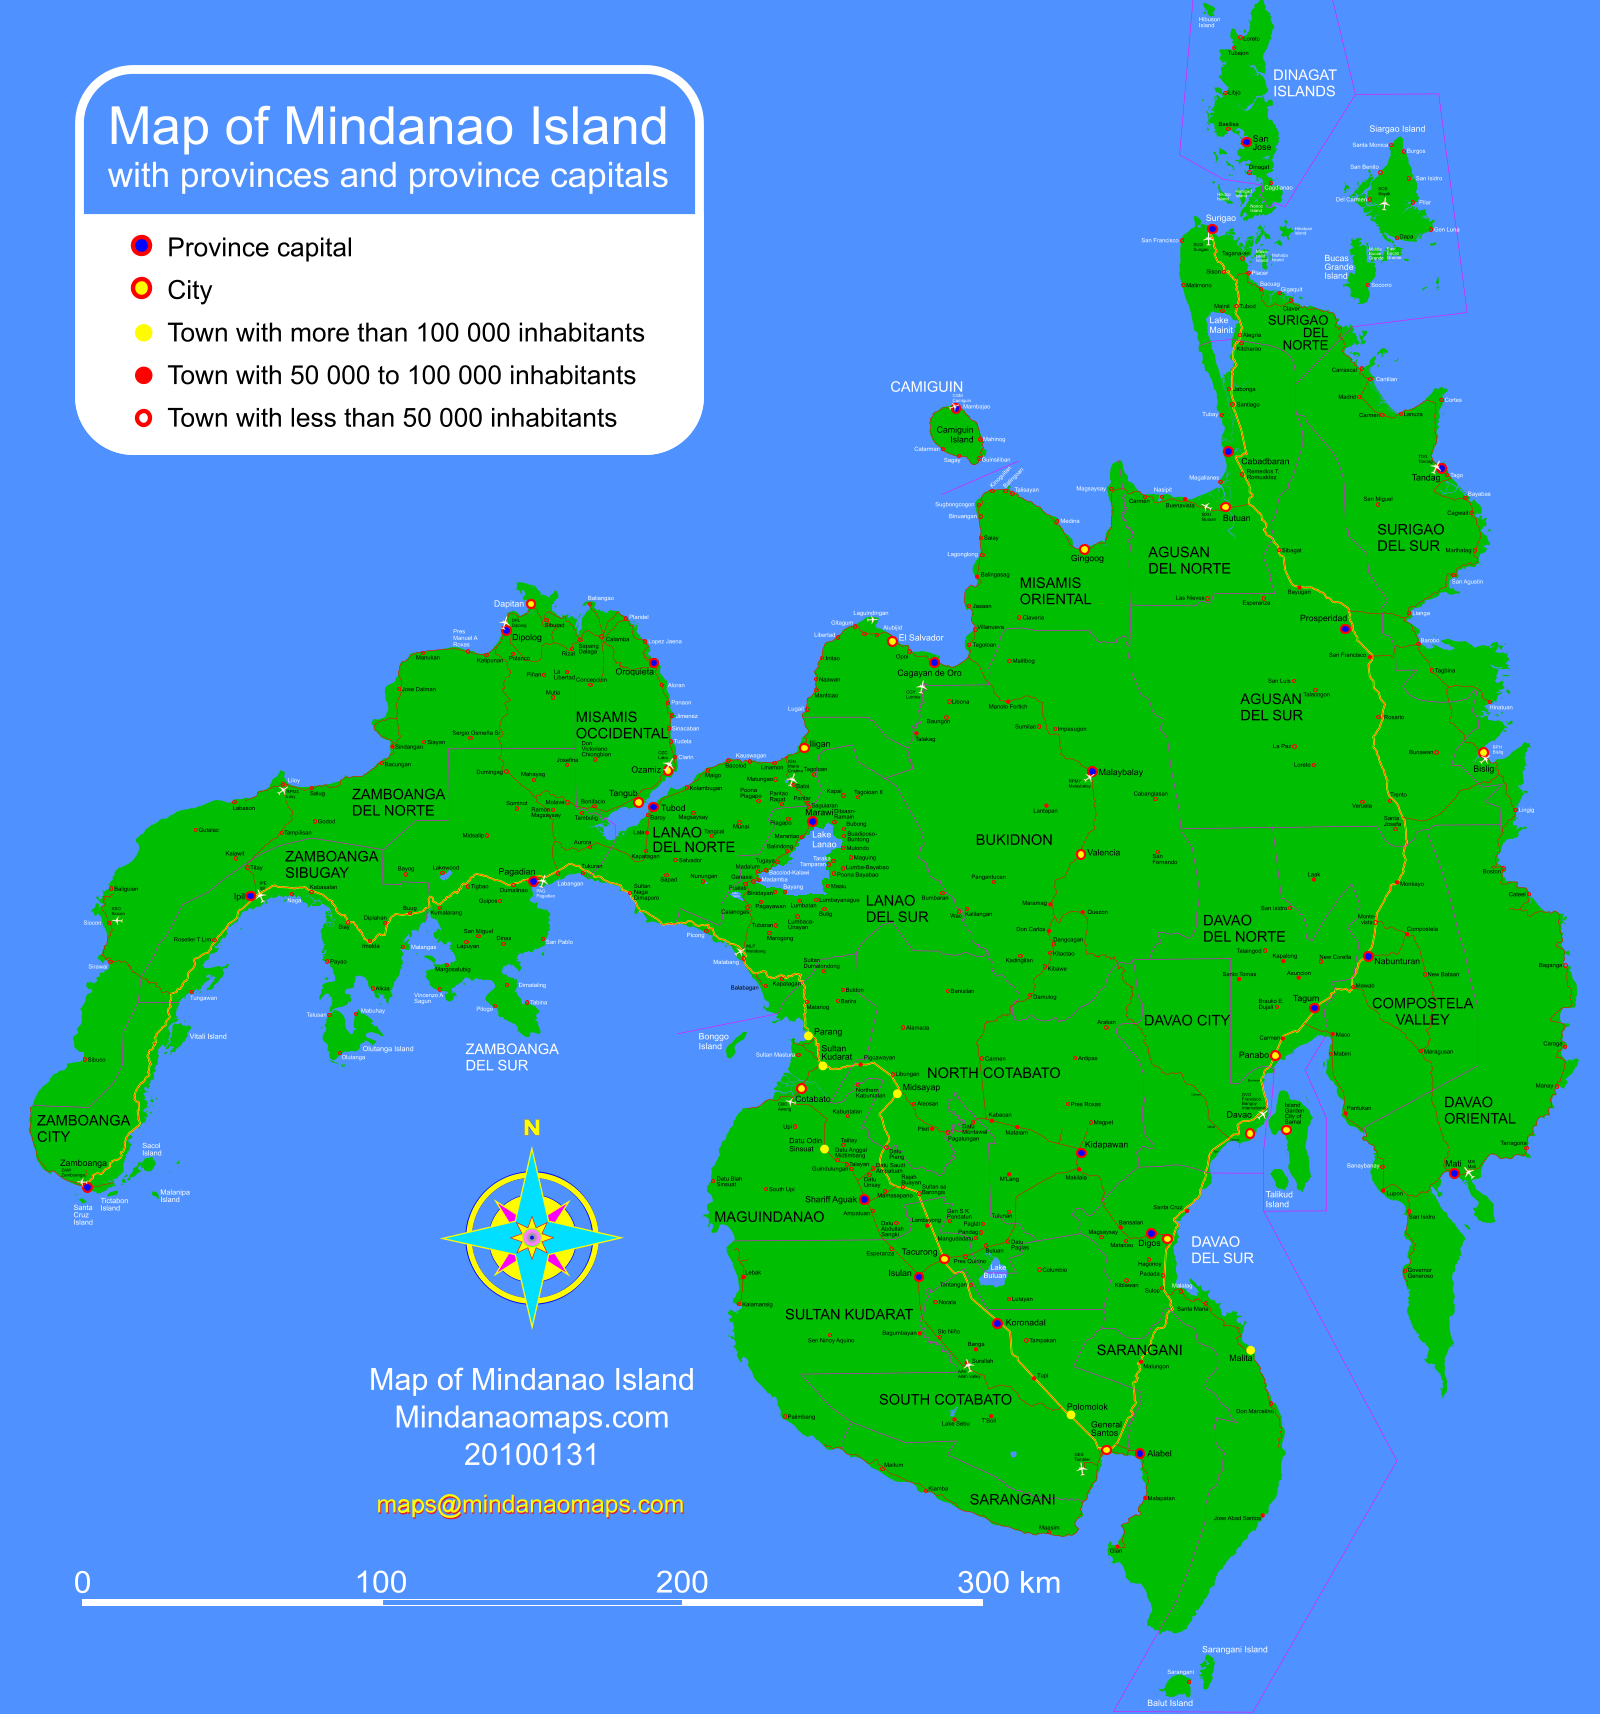 Maps And Directions: Mindanao Maps